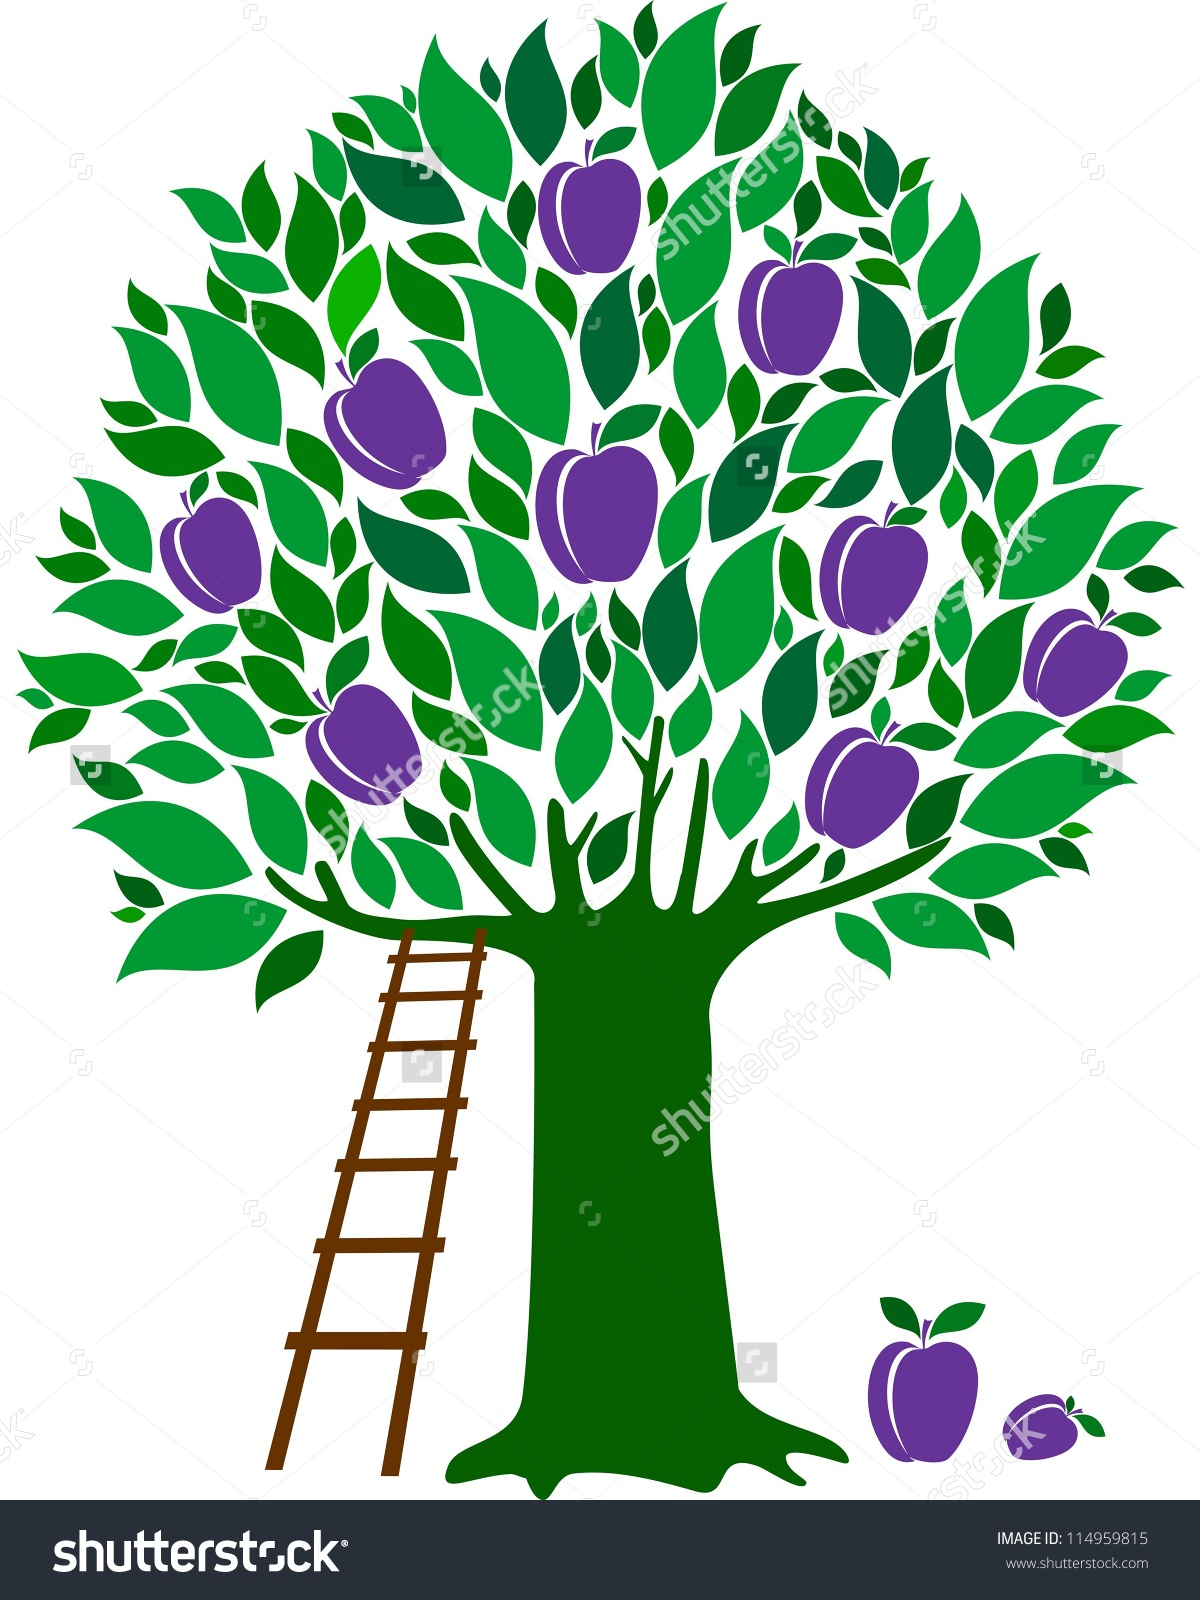 Free clipart images plum tree.